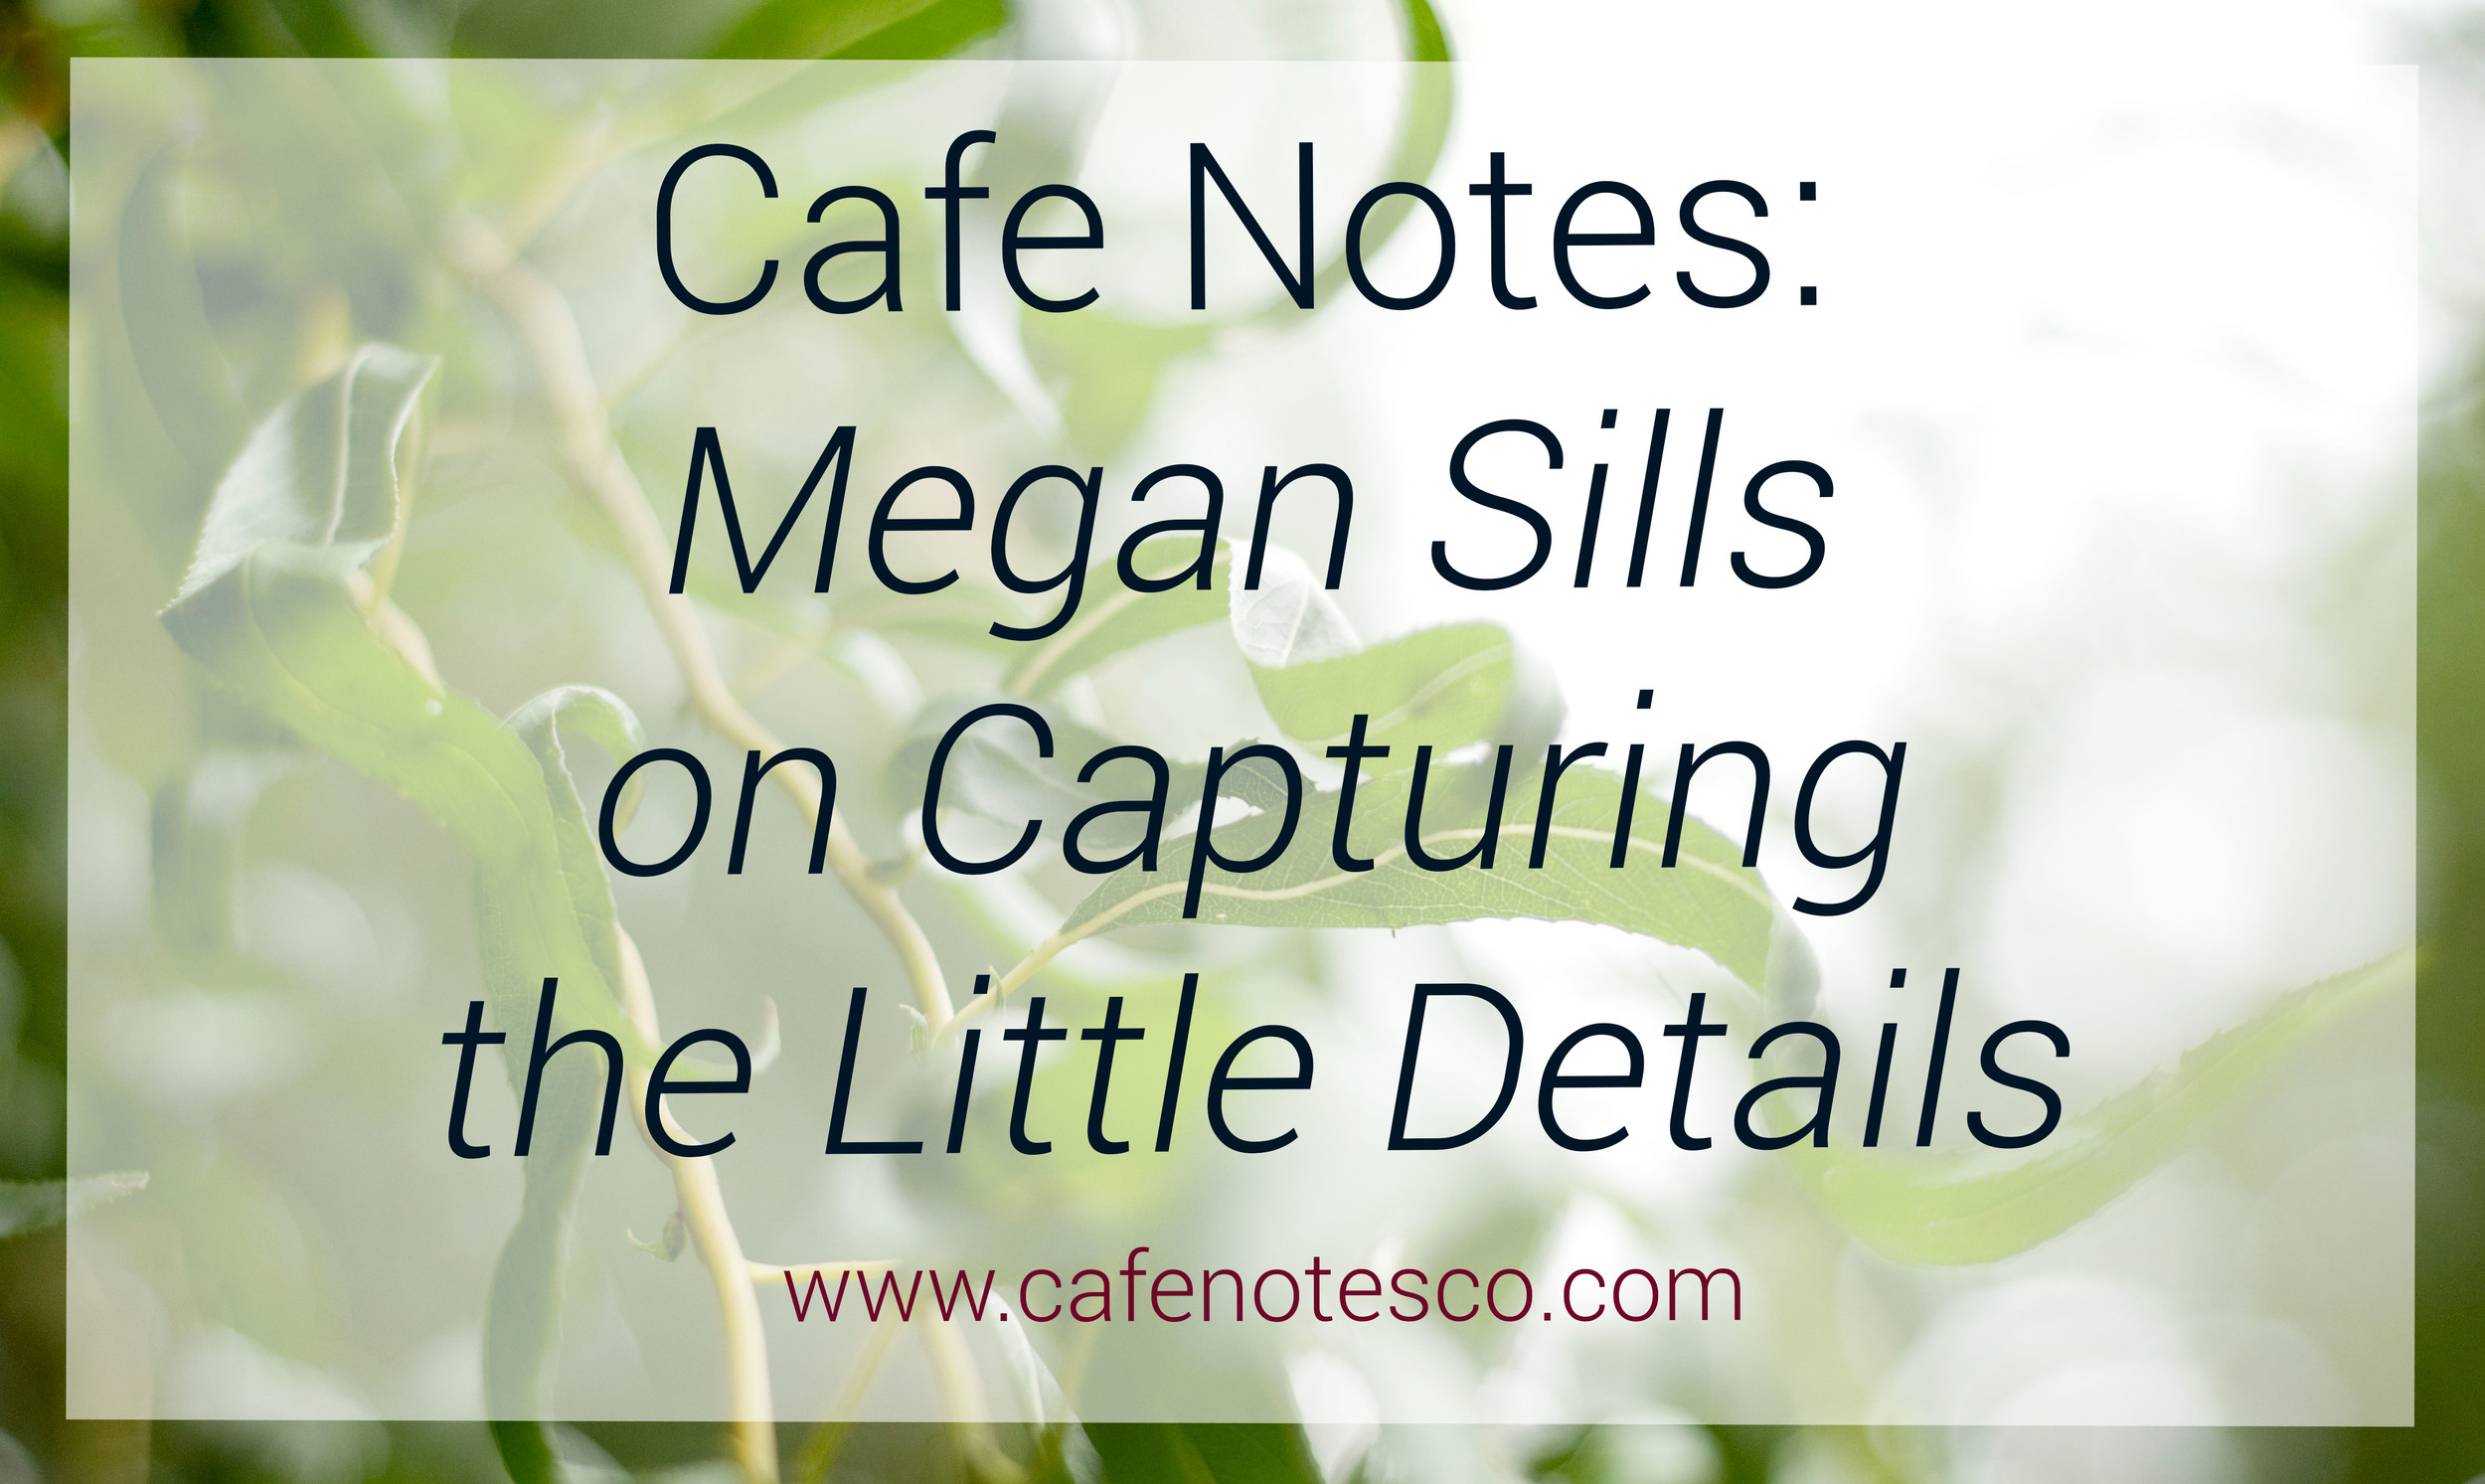 Cafe Notes + Company Megan Sills